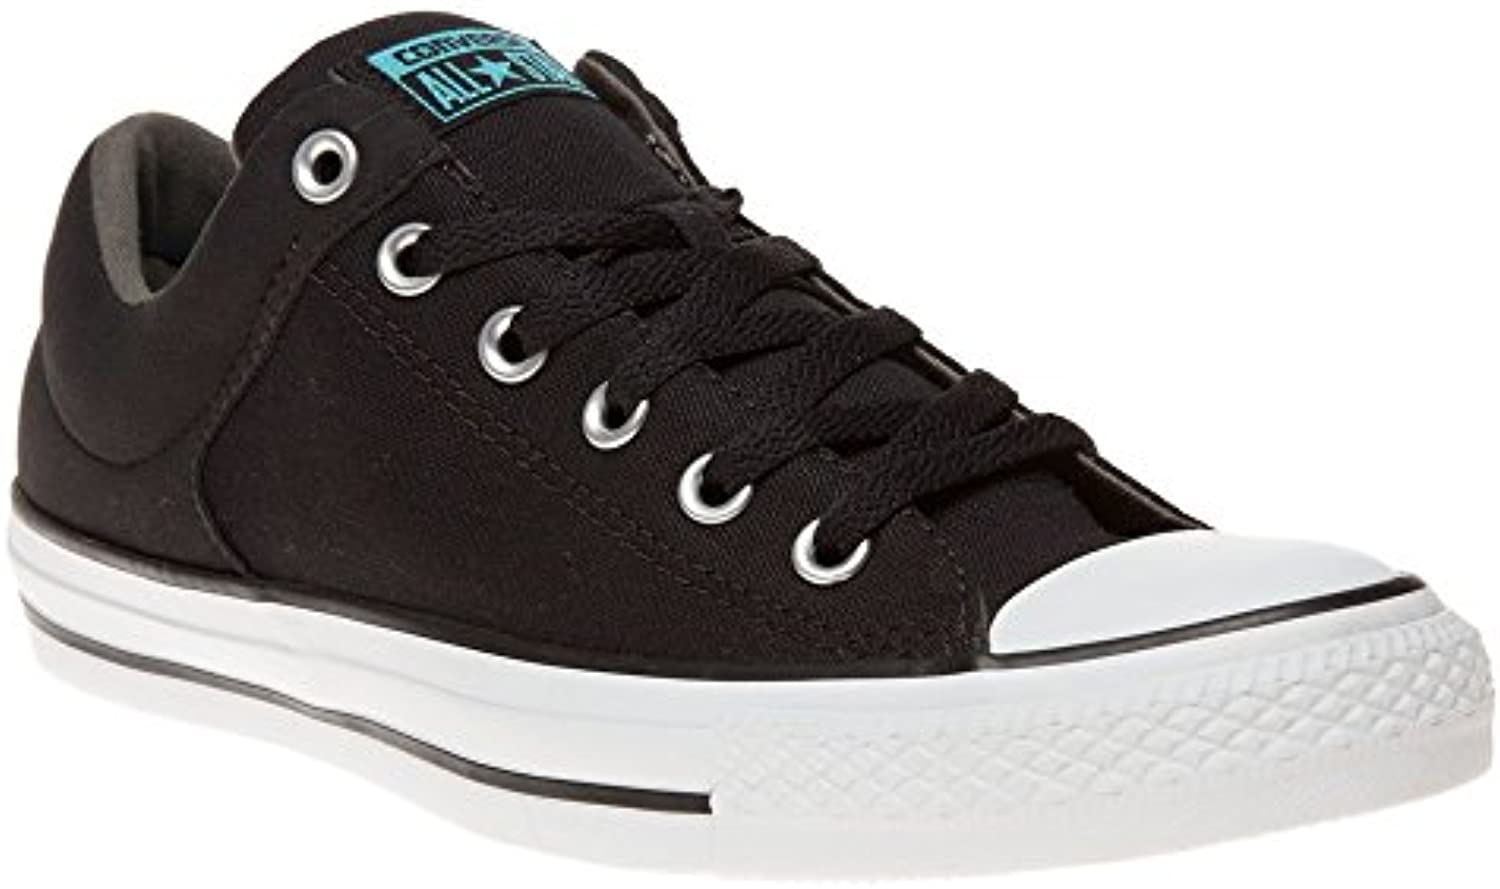 Converse All Star High Street Herren Sneakers Schwarz